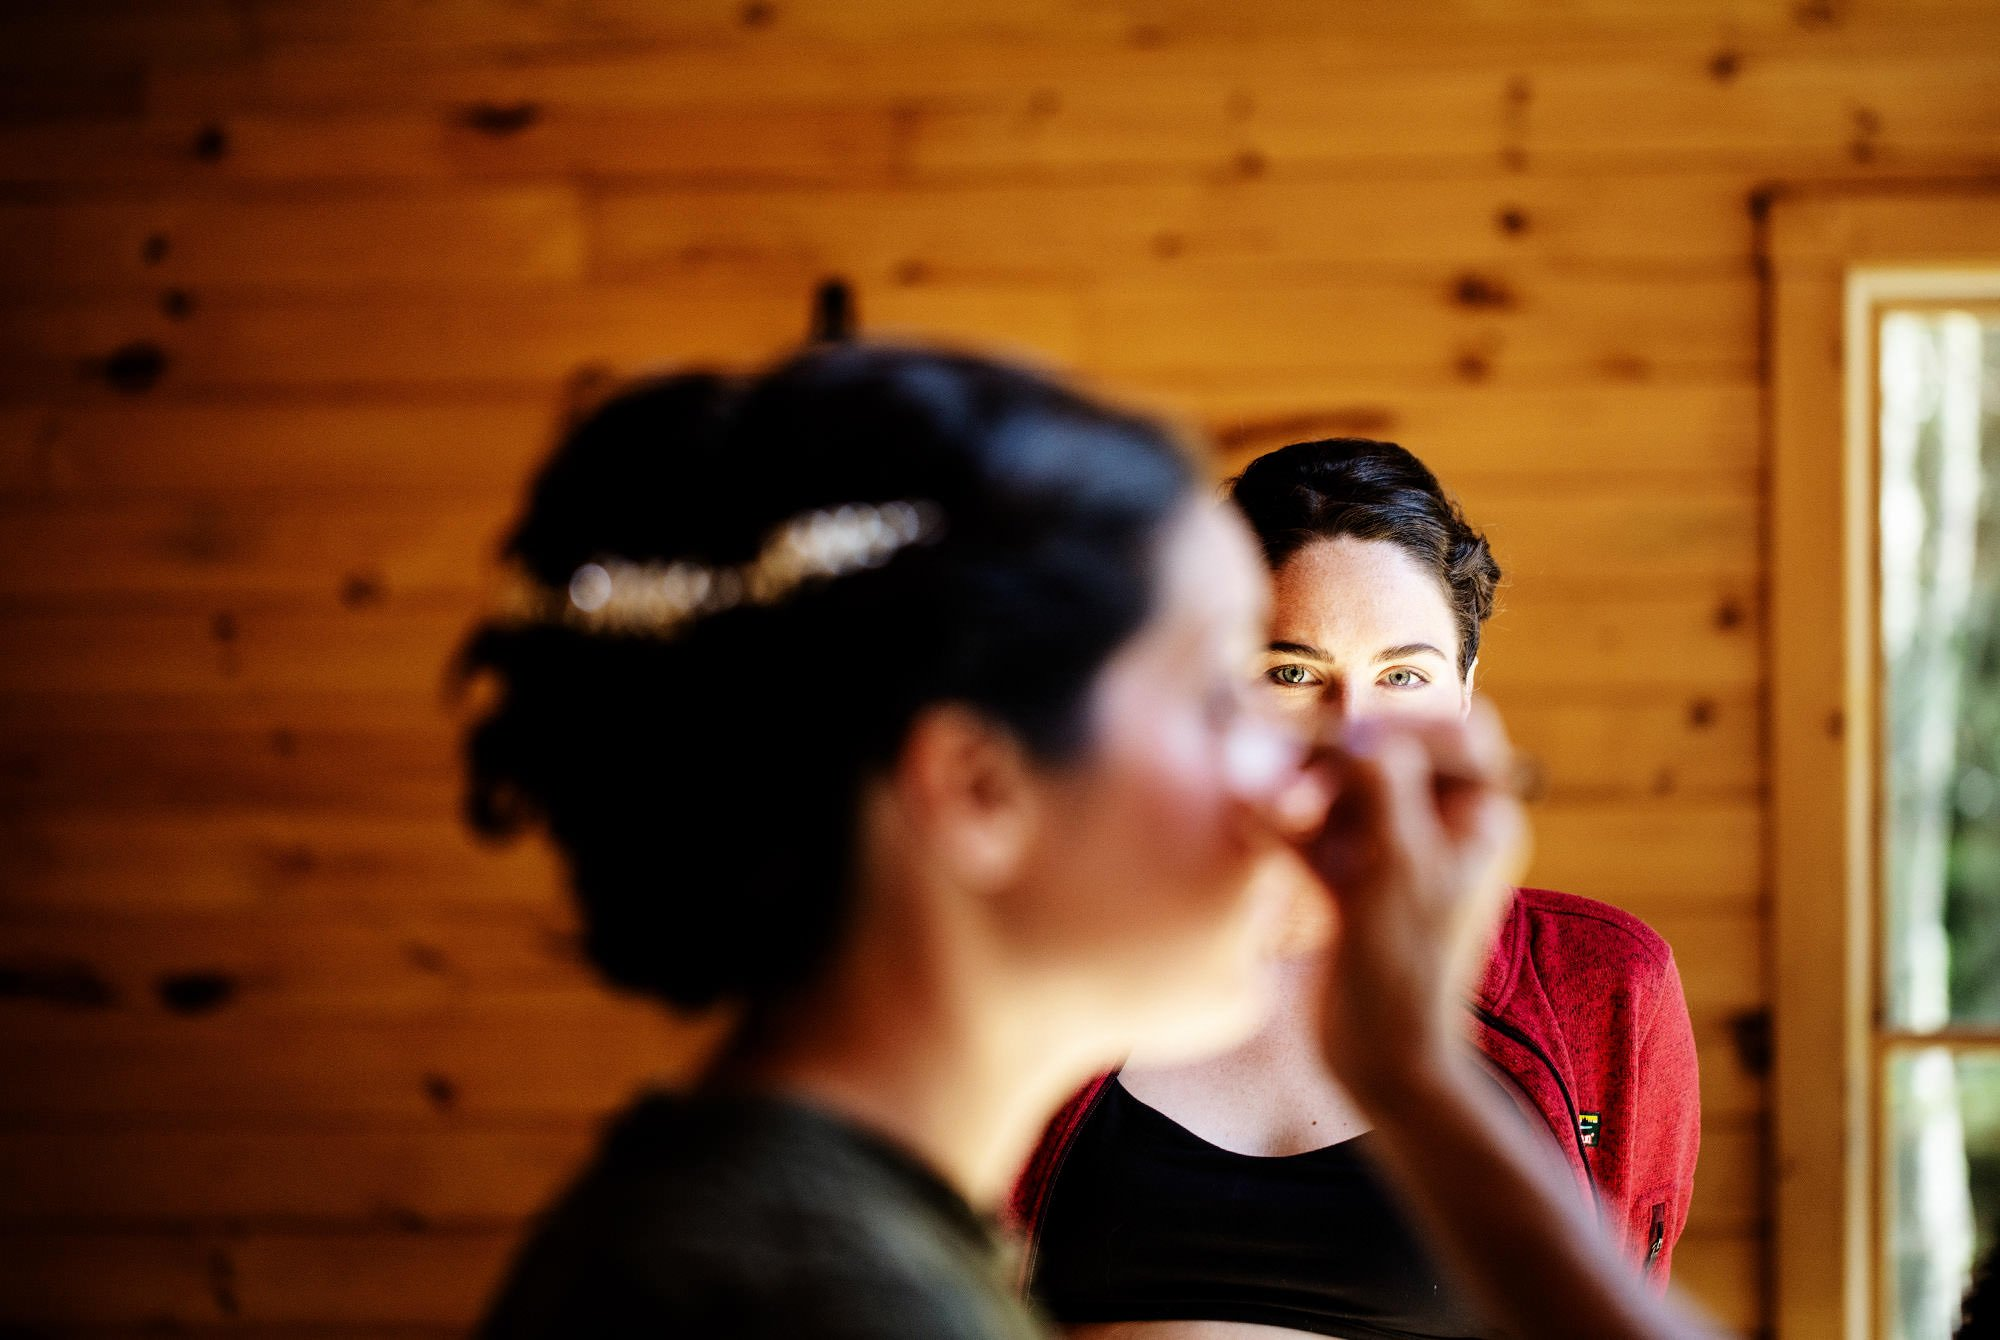 A bridesmaid watches as the bride puts on her makeup before the ceremony at this Maine Lakeside Cabin wedding.